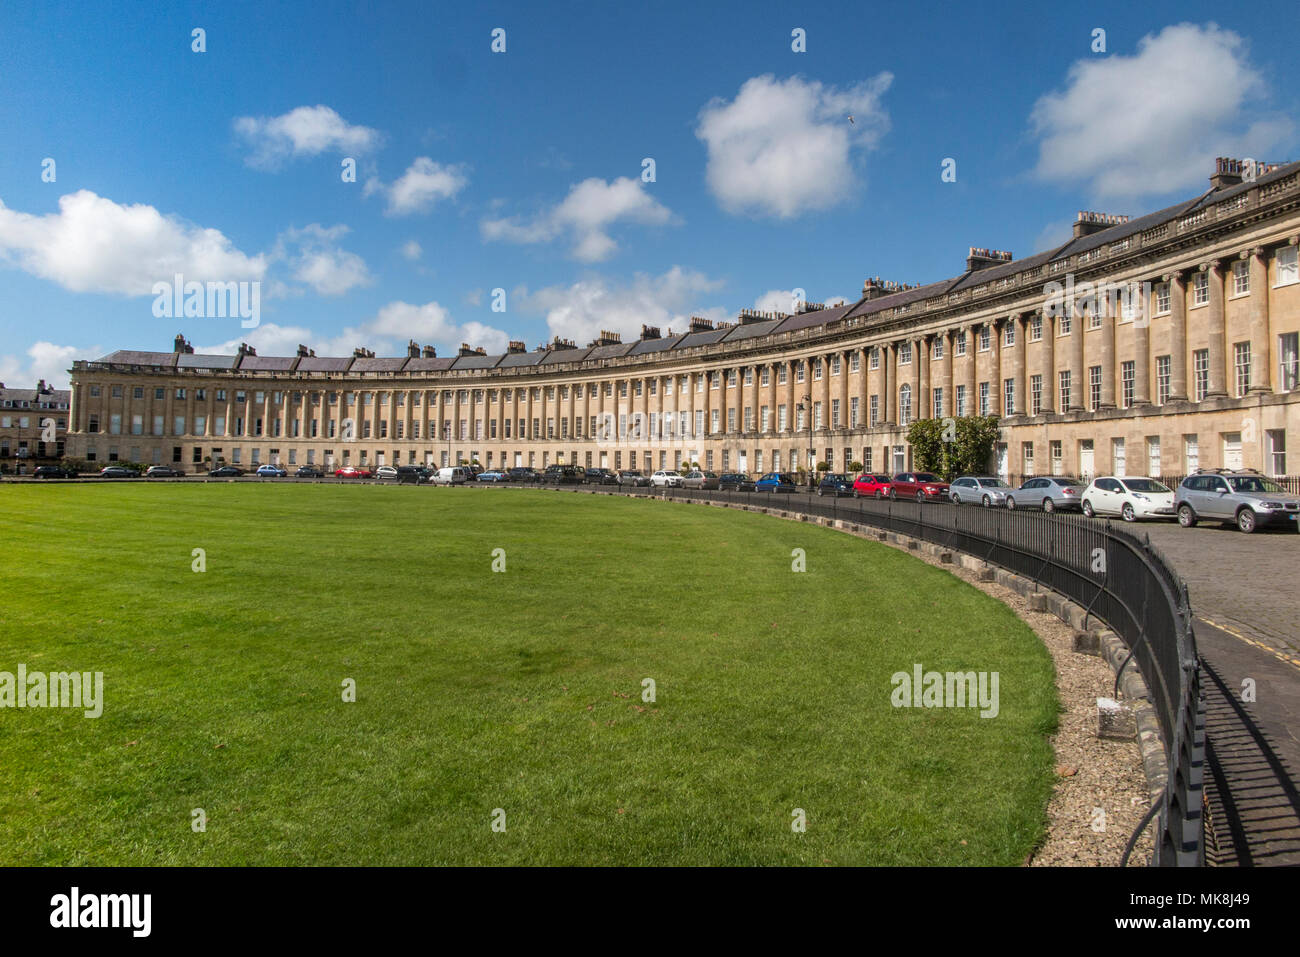 Royal Crescent in the City of Bath on a day in Springtime - Stock Image